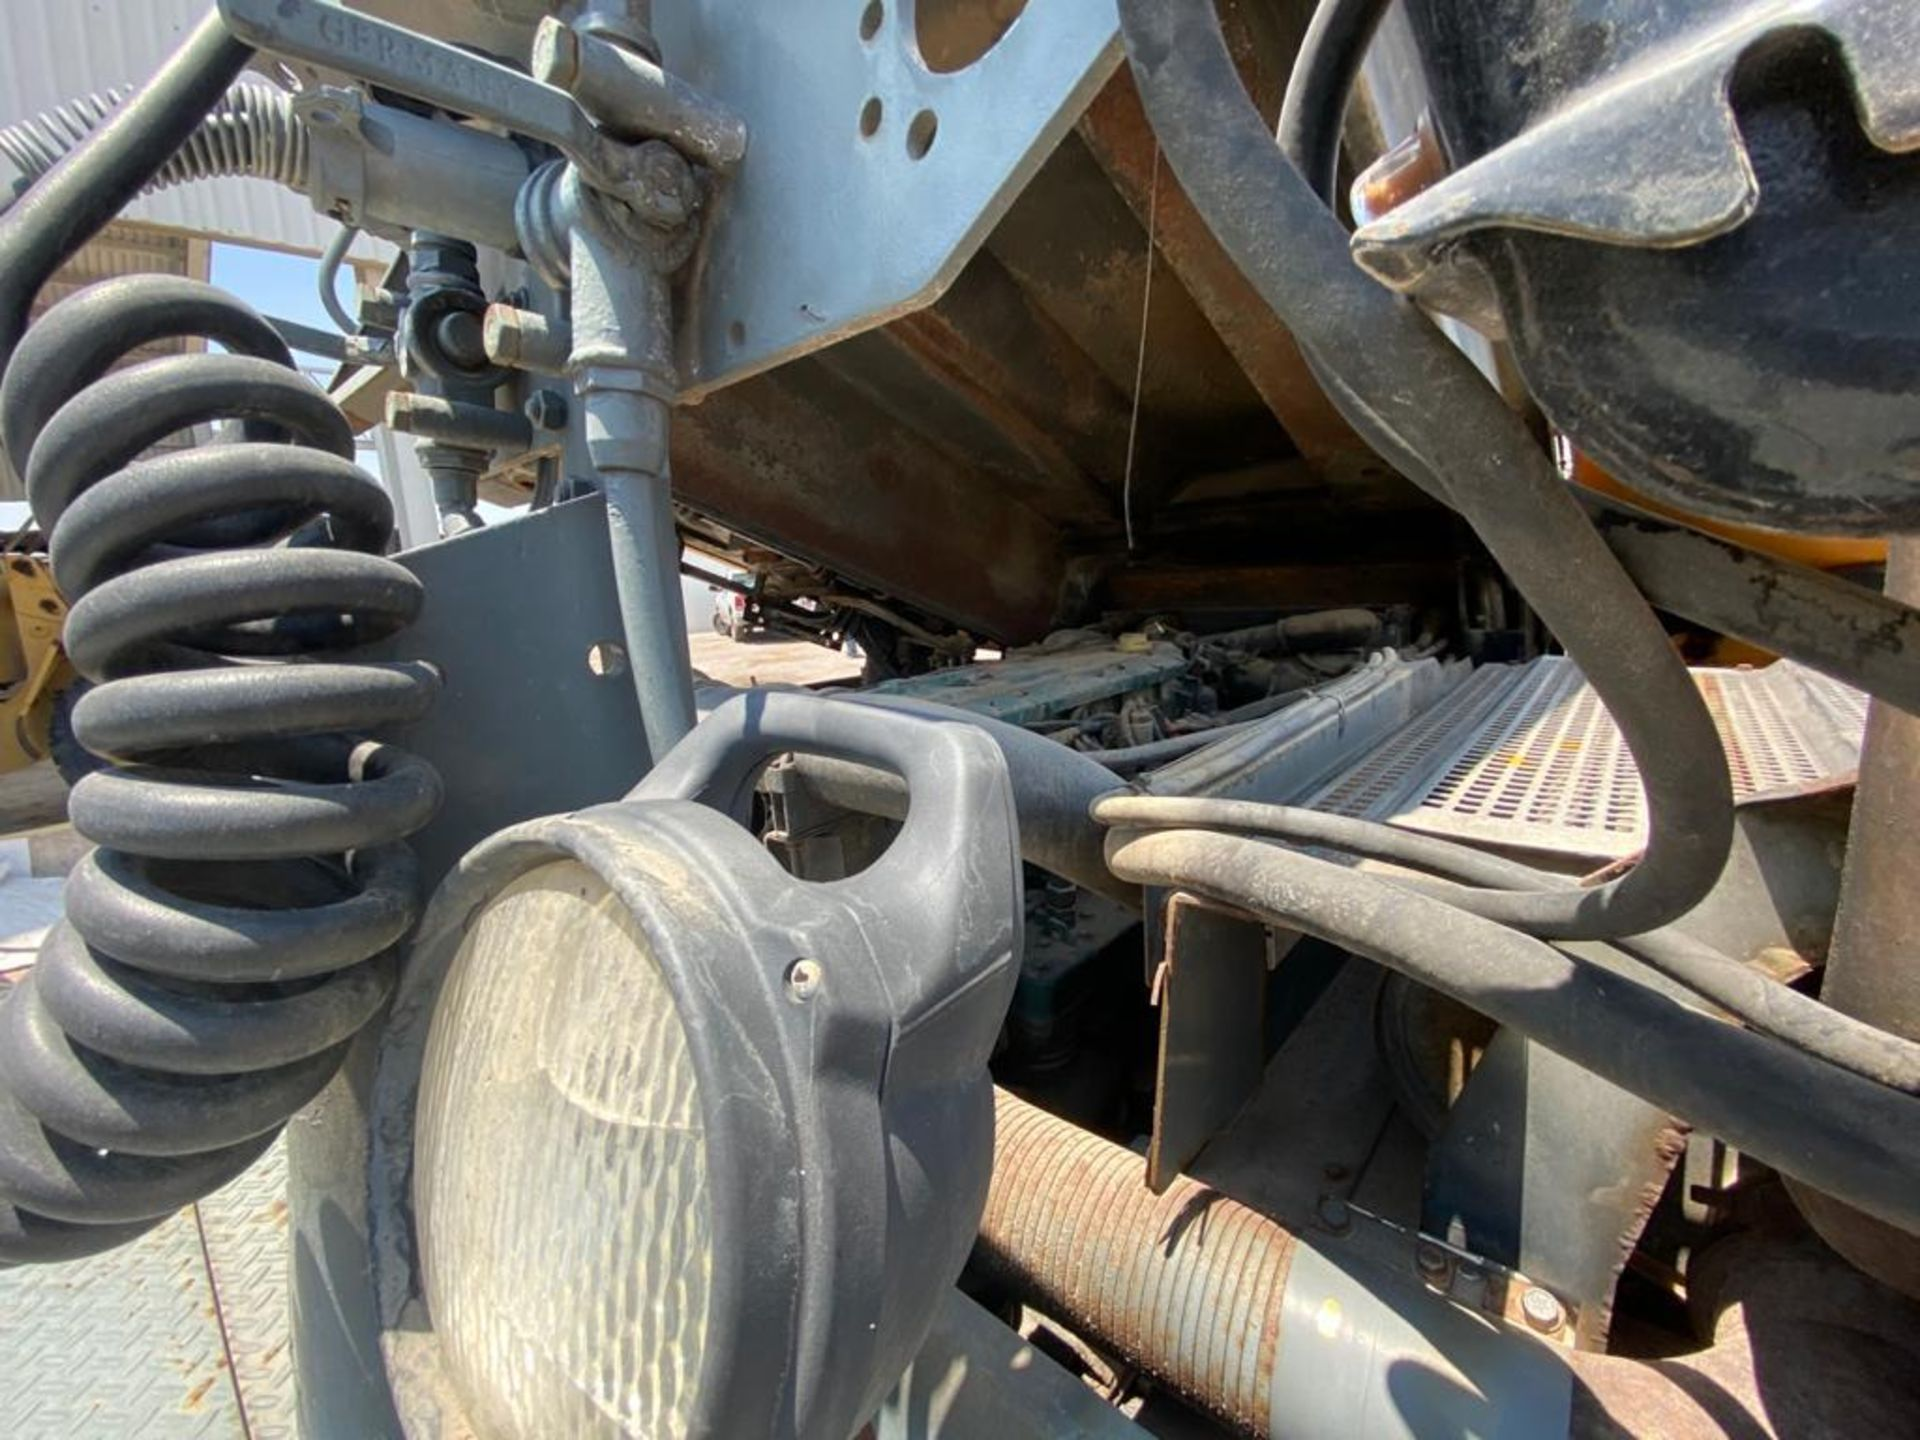 Terberg Capacity 2002 Terminal Tractor, automatic transmission - Image 47 of 57